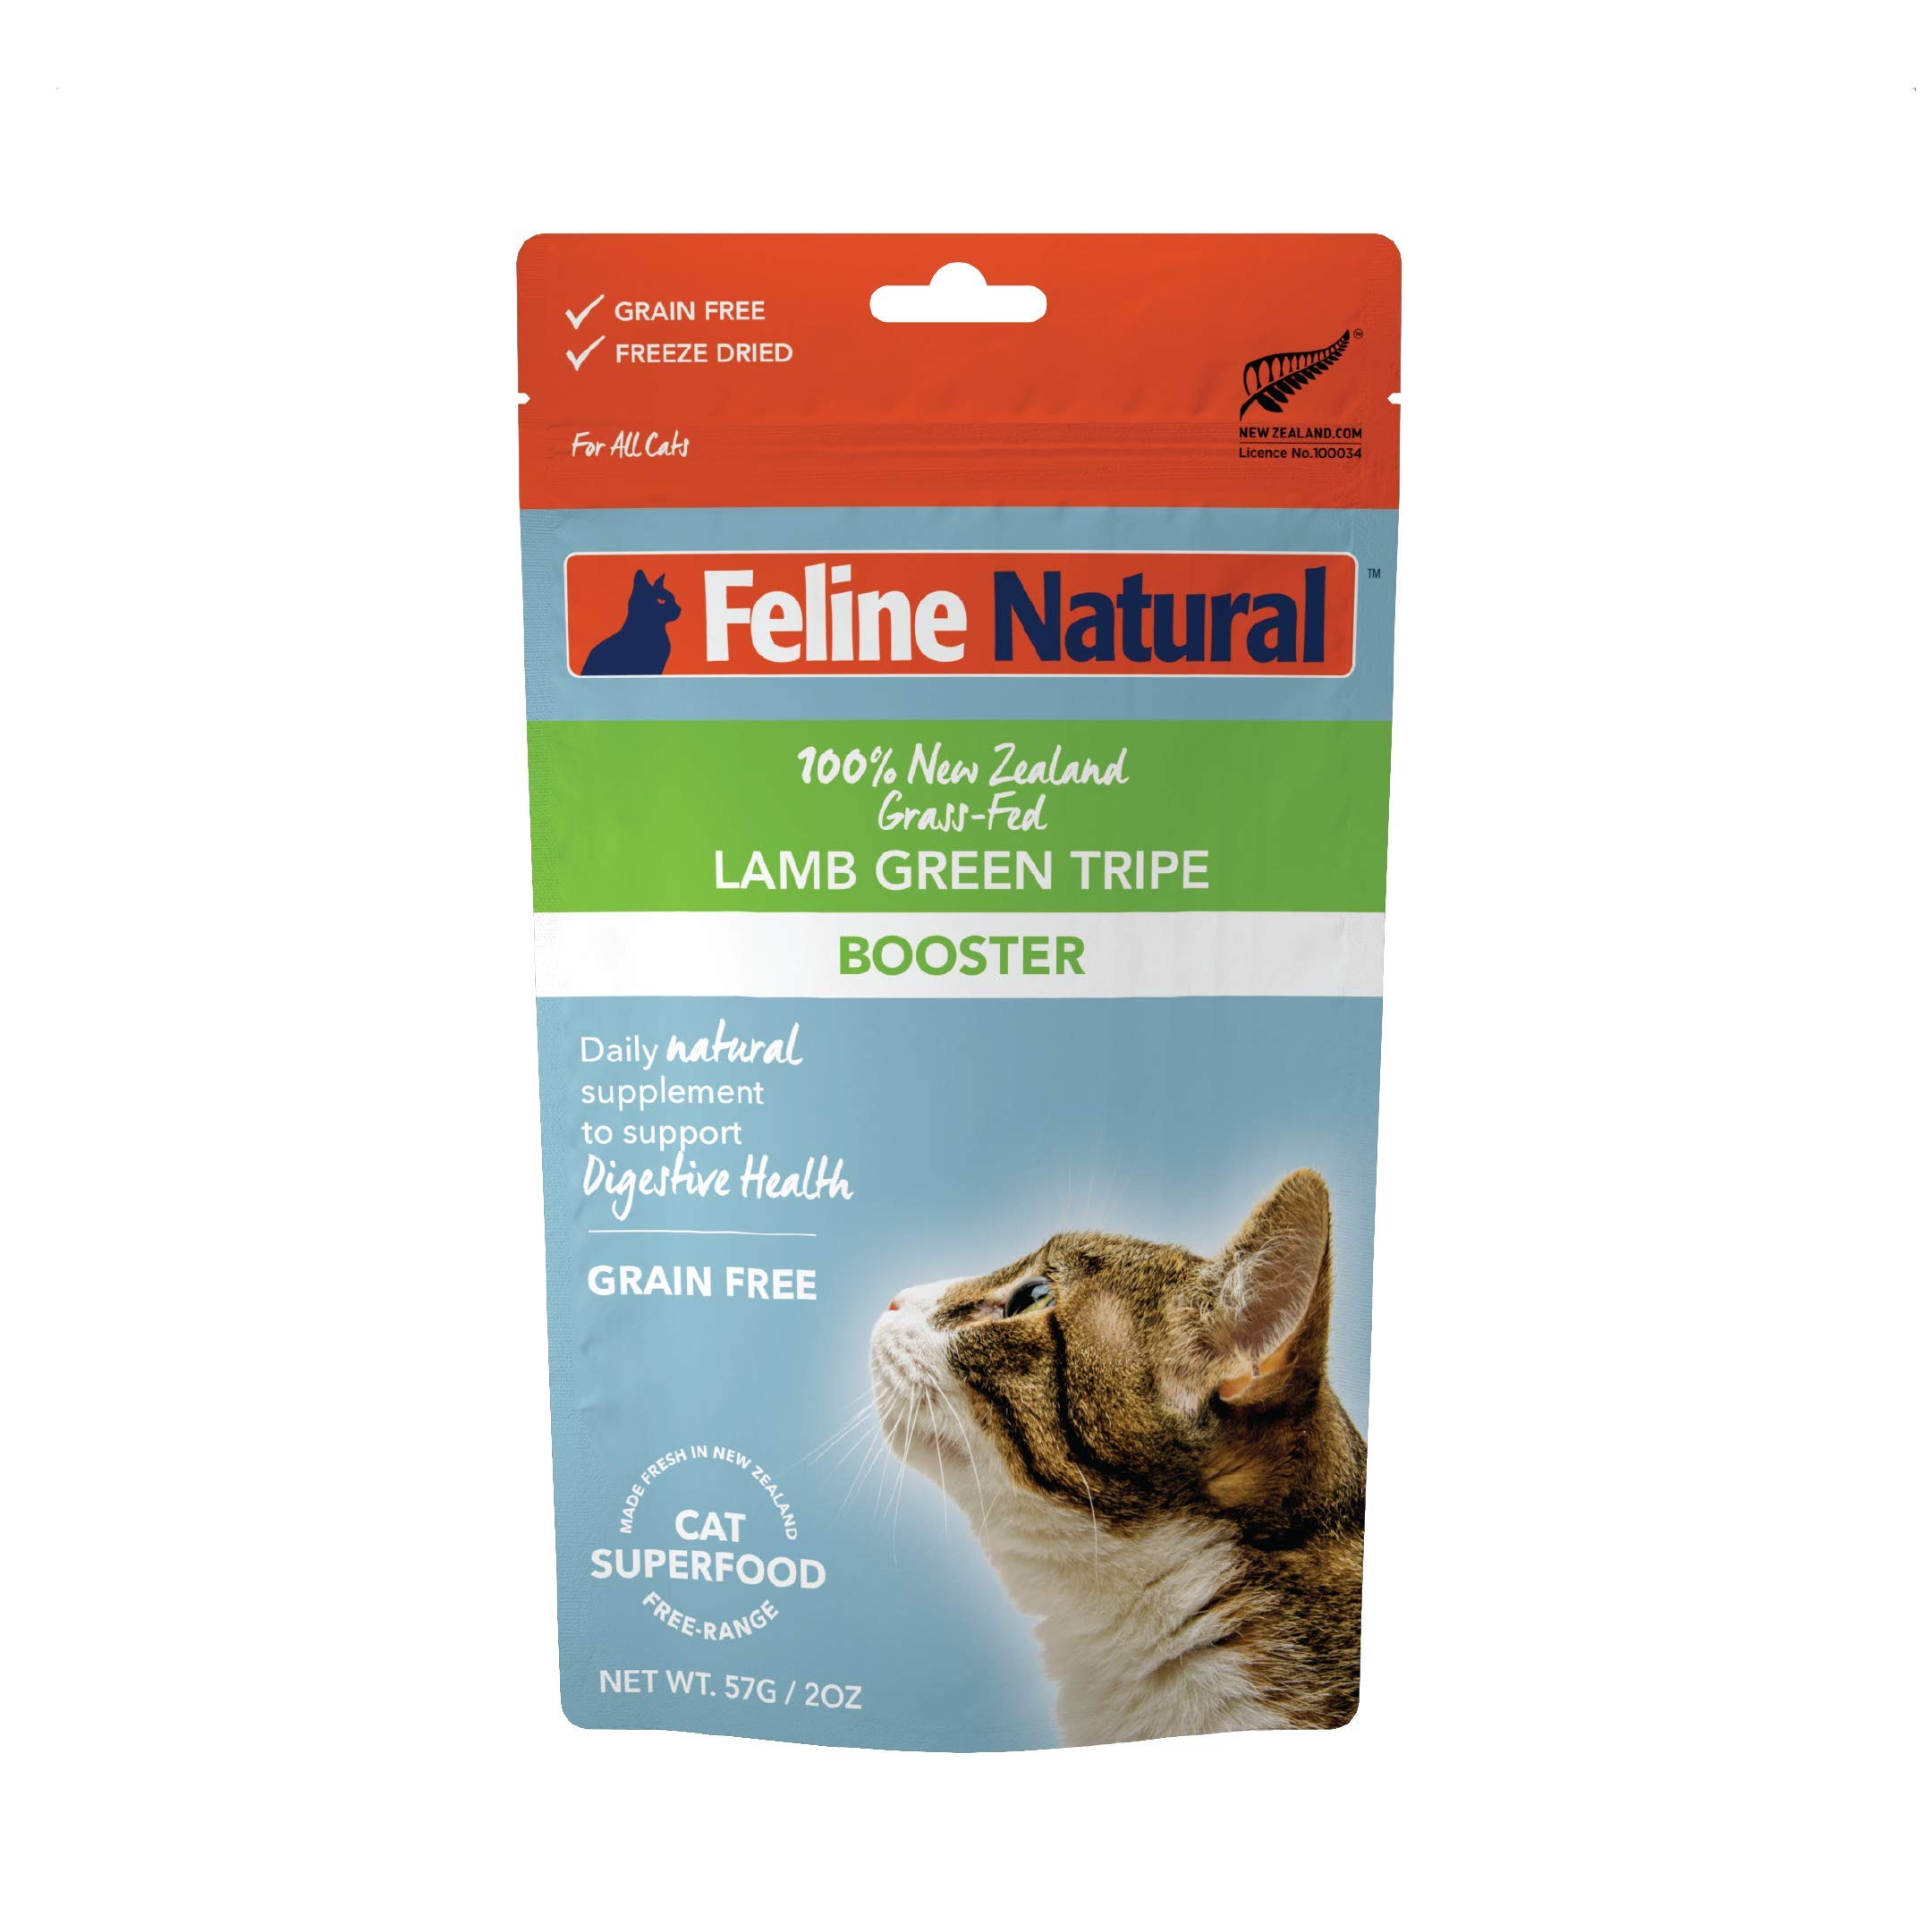 Feline Natural Grain-Free Freeze Dried Cat Food Supplement, Lamb Green Tripe 2oz by K9 Natural/Feline Natural